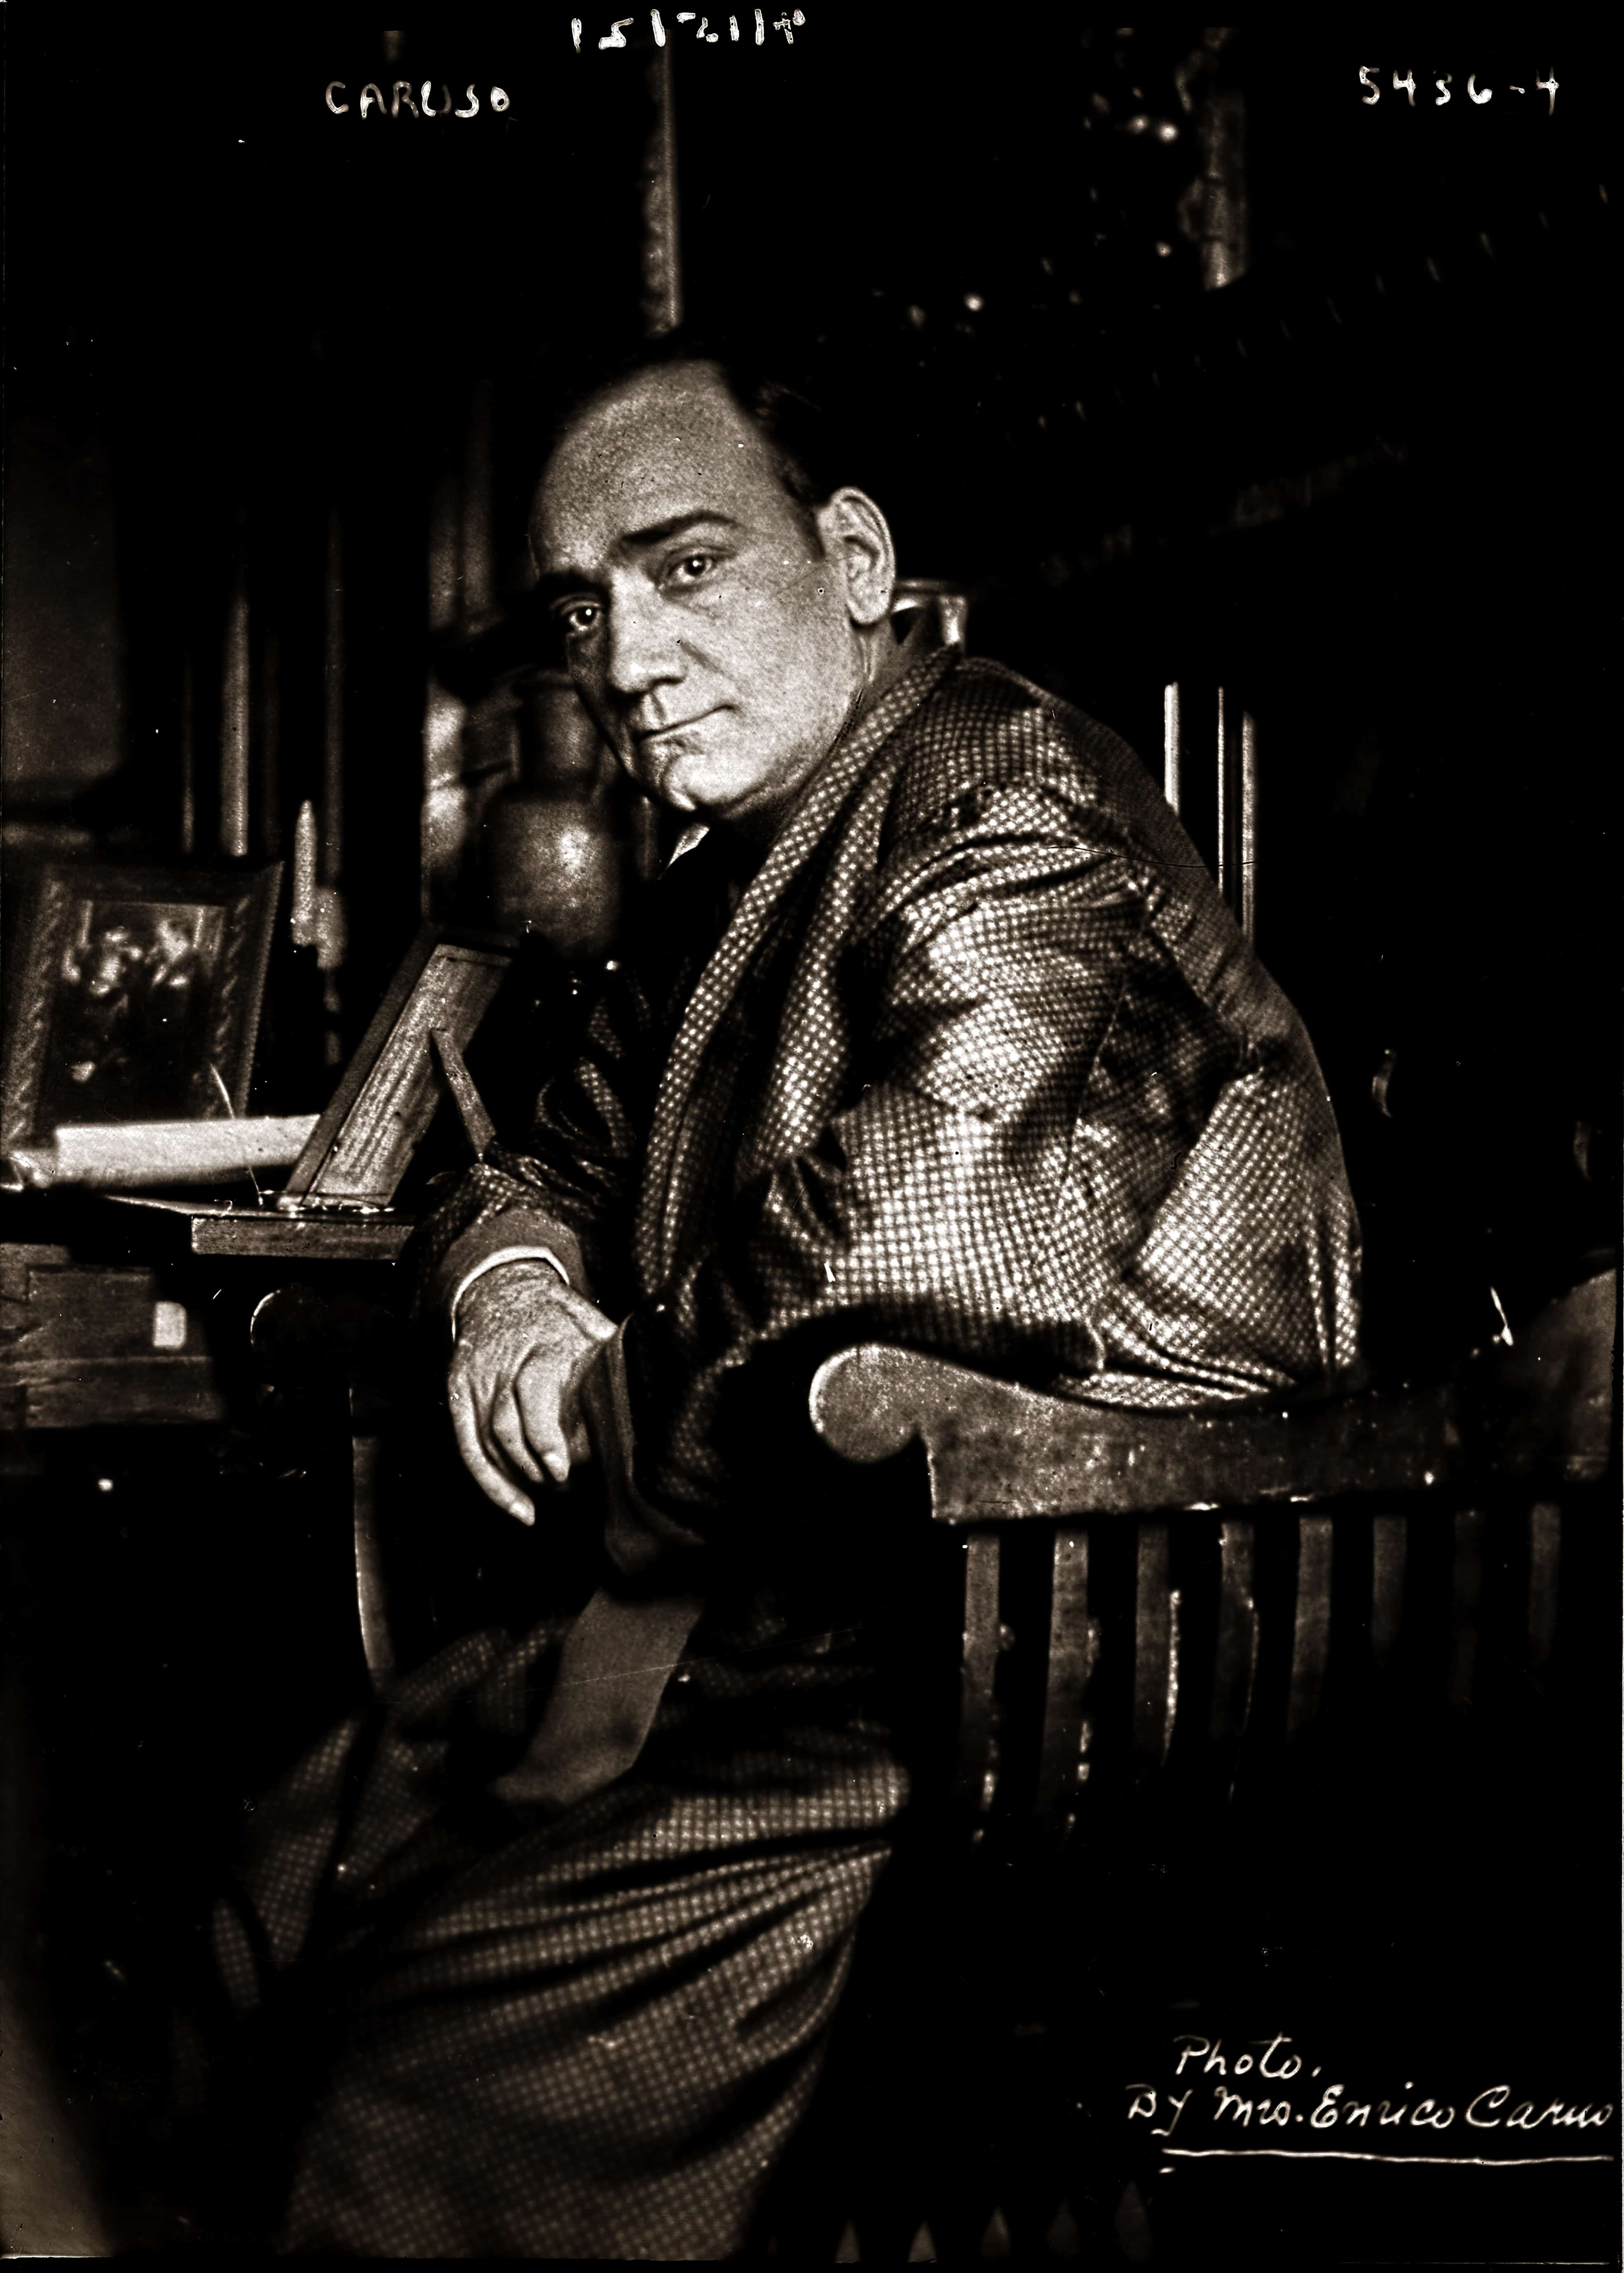 100 years after Caruso…